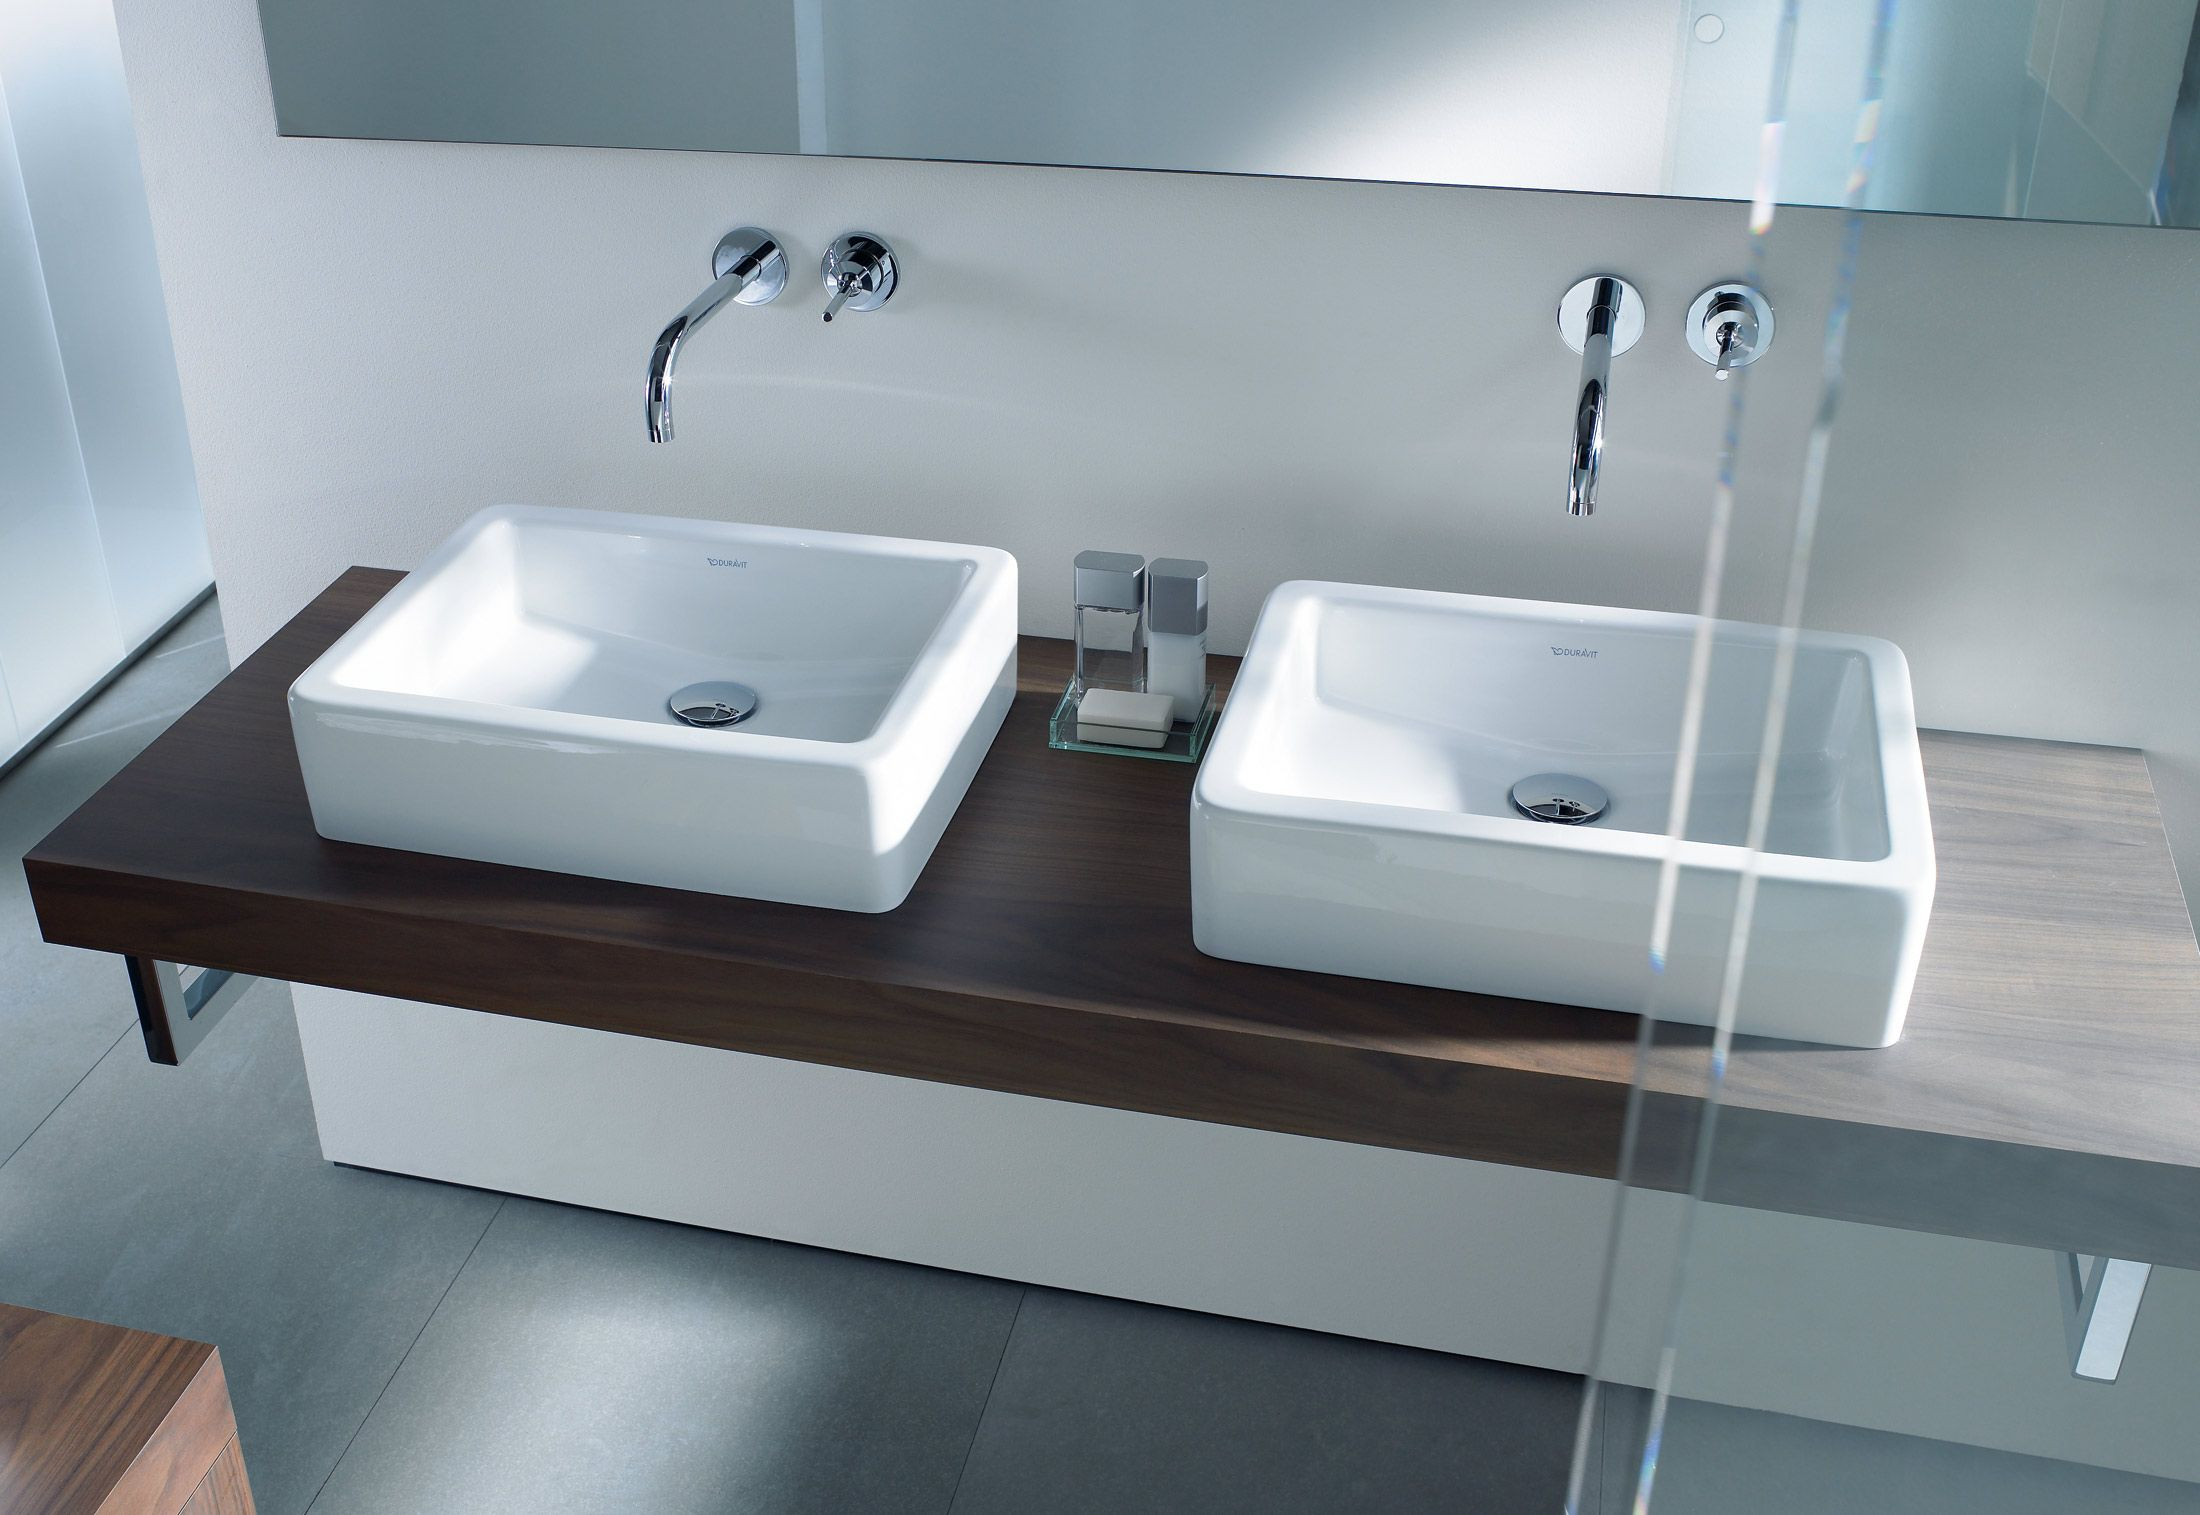 Duravit Vero Wash Basin Bath Pinterest Bathroom Duravit Und Bath